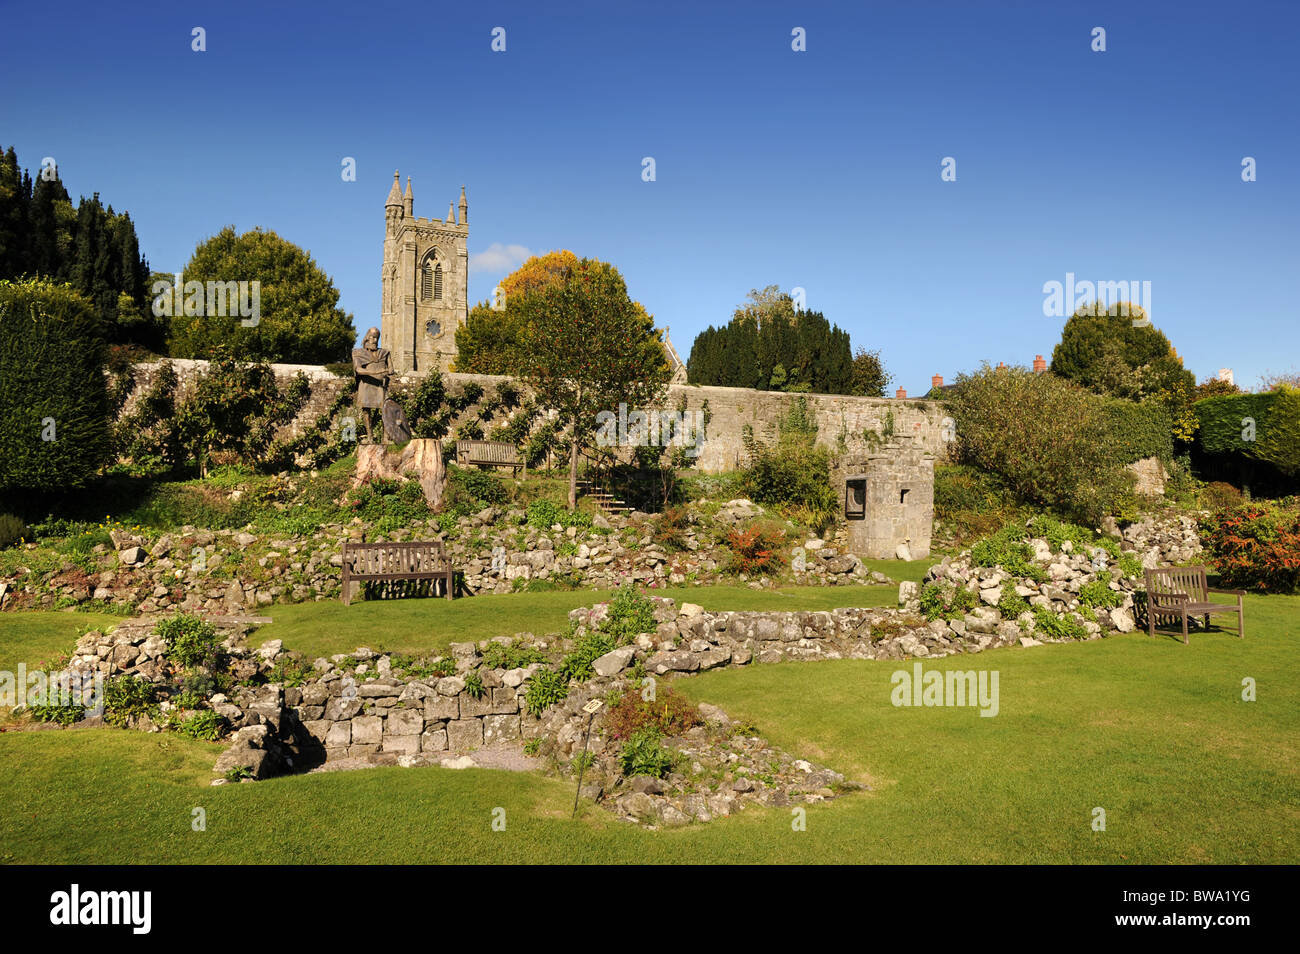 The ruins of Shaftesbury Abbey Dorset UK with a statue of King Alfred and the shrine which once housed the relics - Stock Image